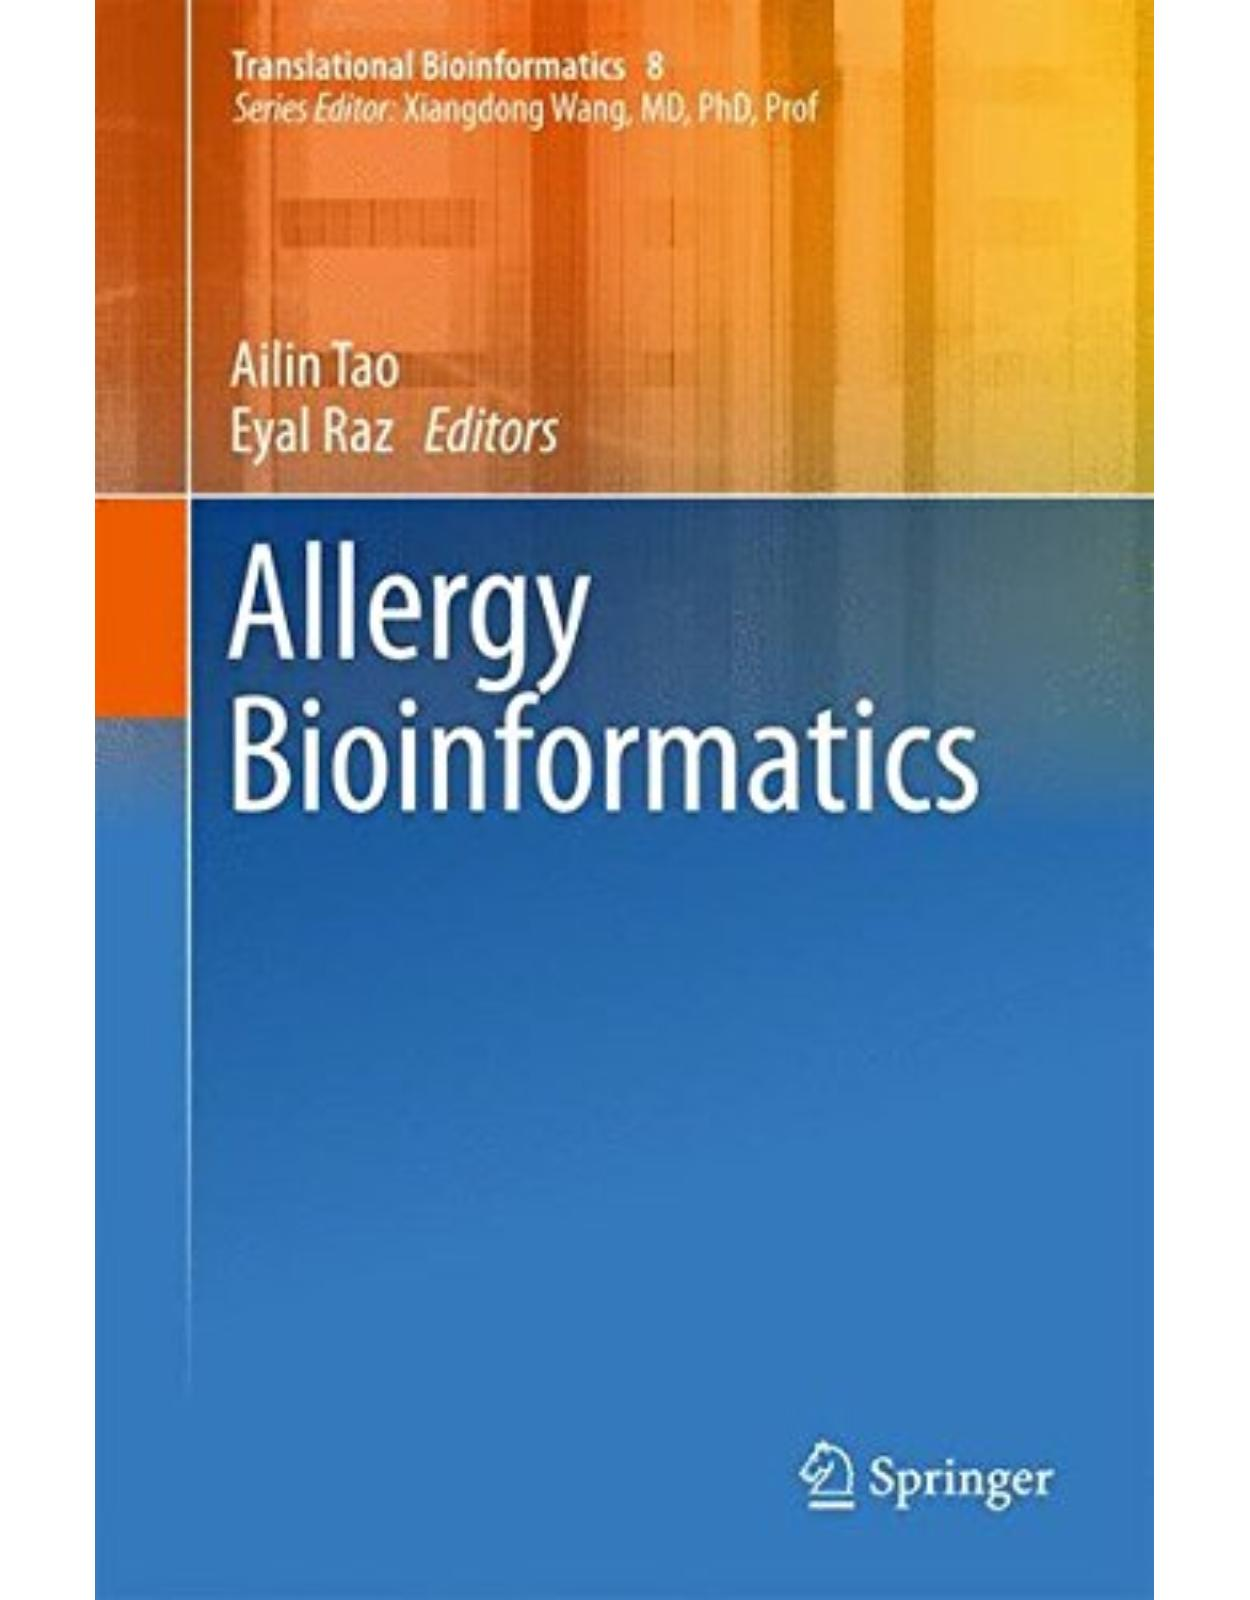 Allergy Bioinformatics (Translational Bioinformatics)